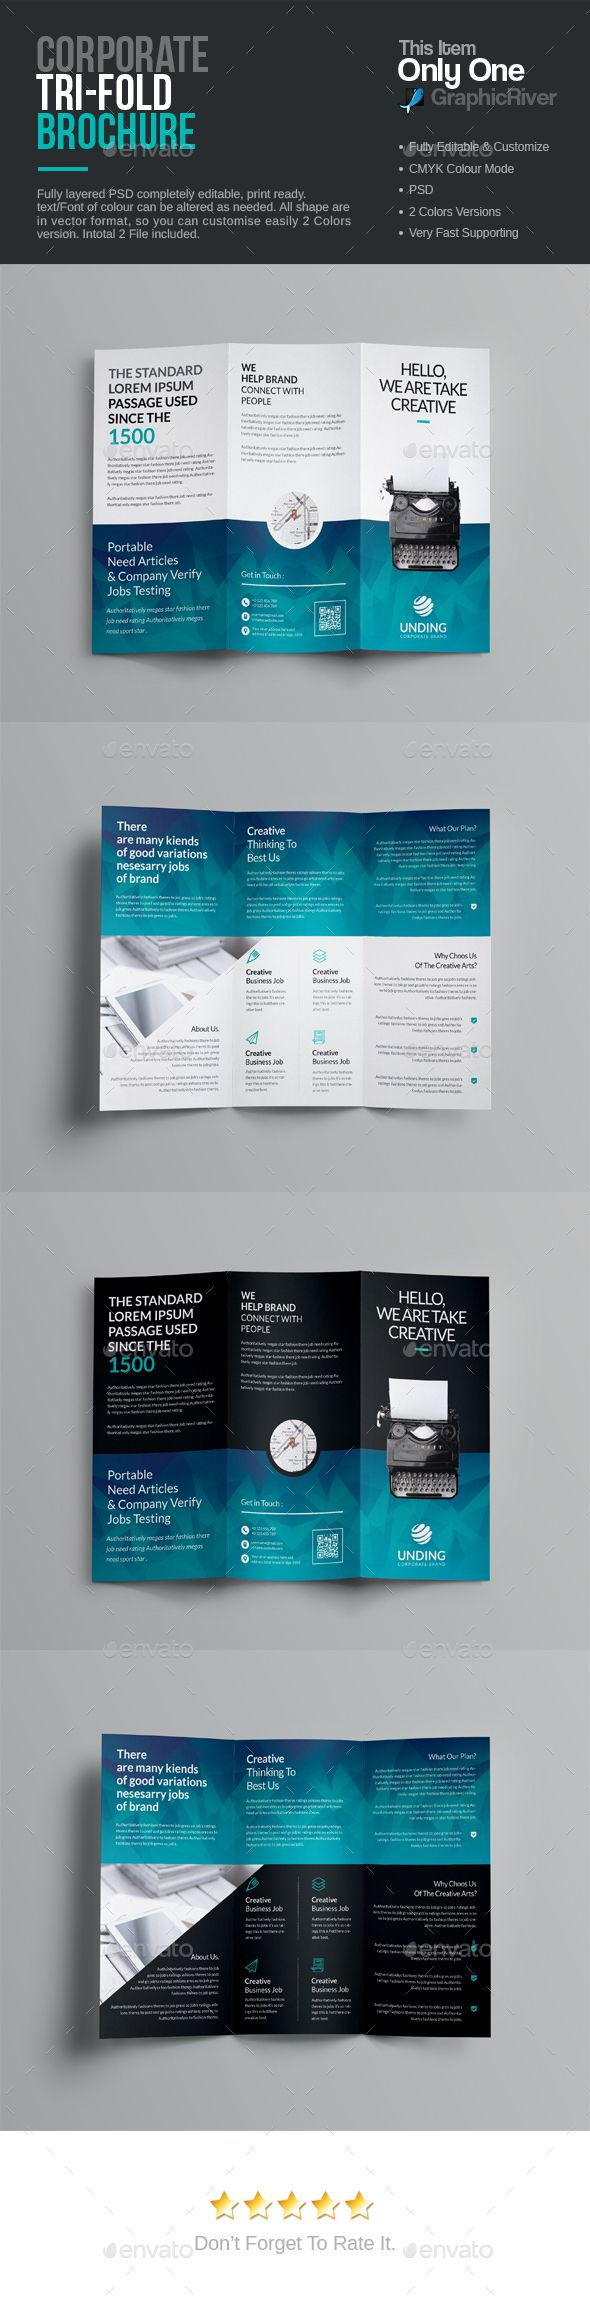 Beautiful 1 Page Resume Format Free Download Small 100 Free Resume Builder And Download Rectangular 100 Free Resume Builder Online 1099 Contract Template Youthful 15 Year Old Resume Gray2 Circle Template 945 Best Images About Best Tri Fold Brochure Designs On Pinterest ..